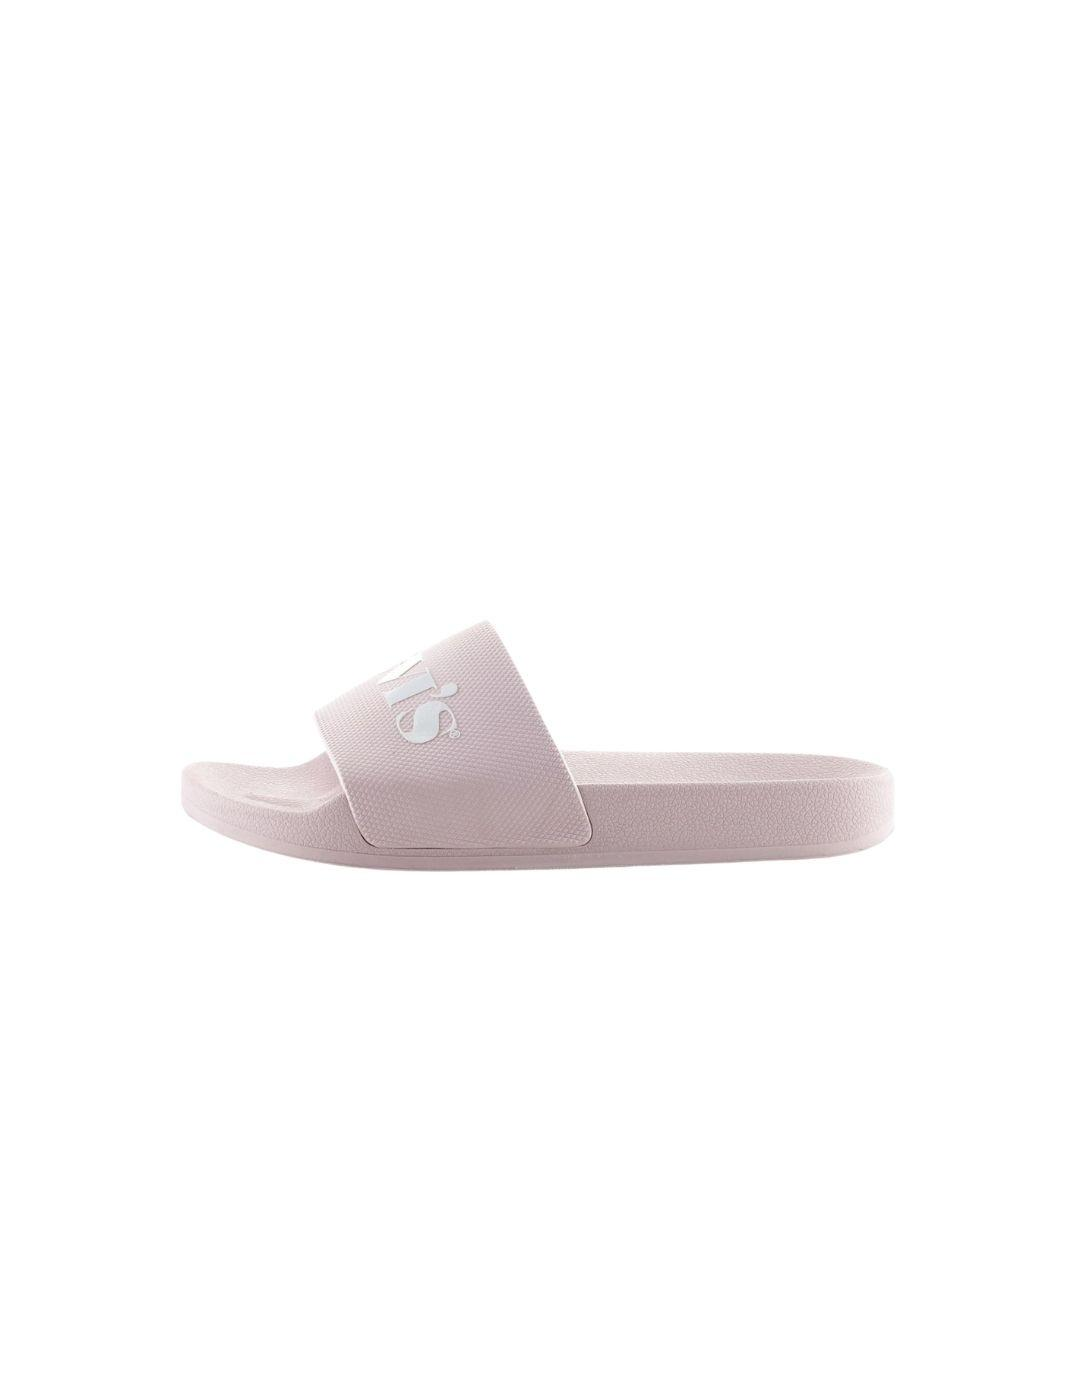 Chancla Levis June Sliders lilac de mujer